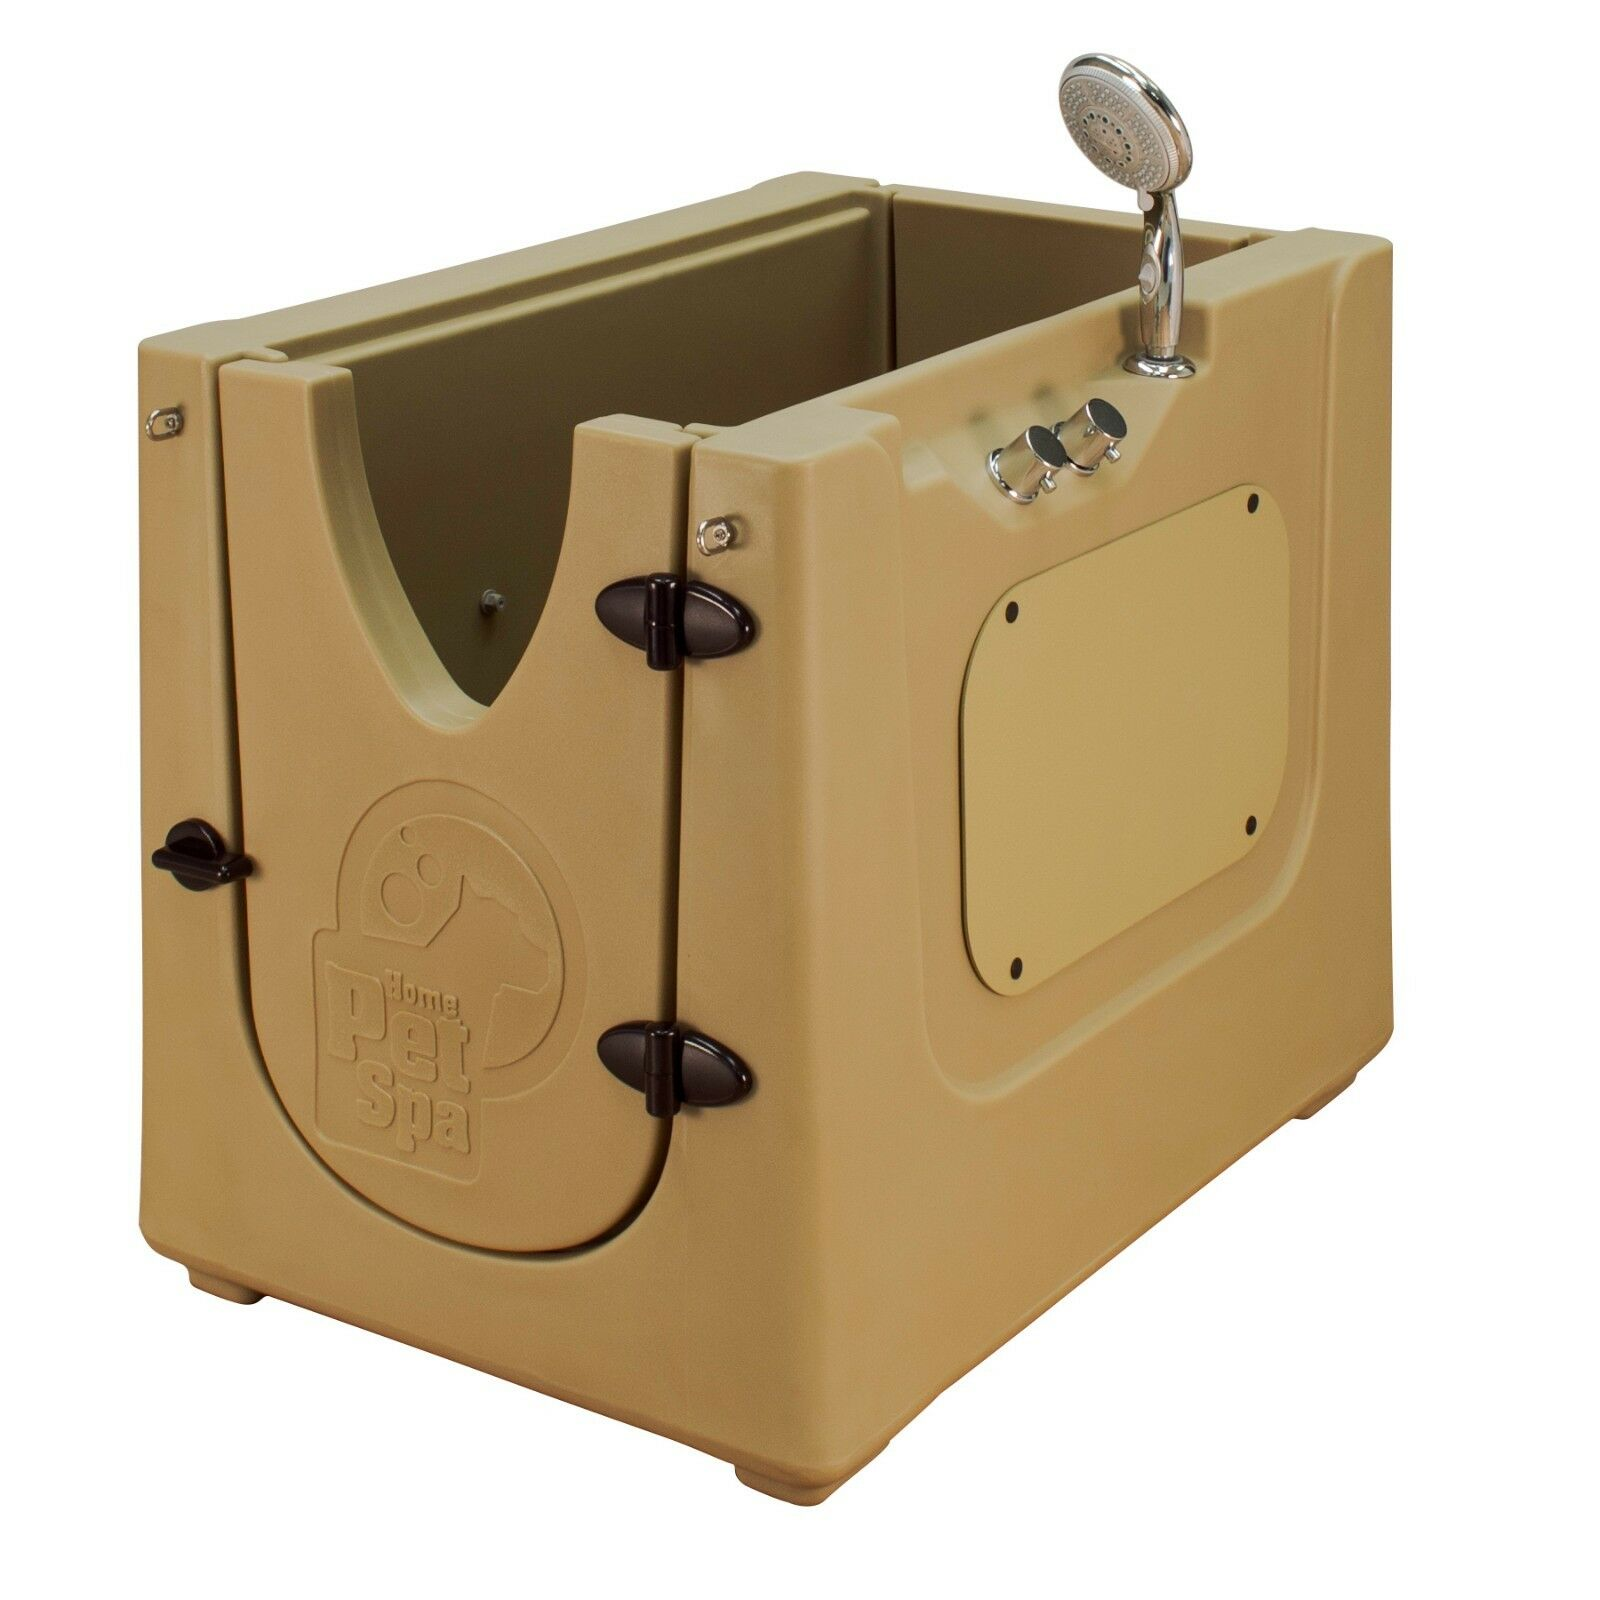 Home Pet Spa  Mobile Pet Dog Washing & Grooming Bath Enclosure in outdoor Mocha